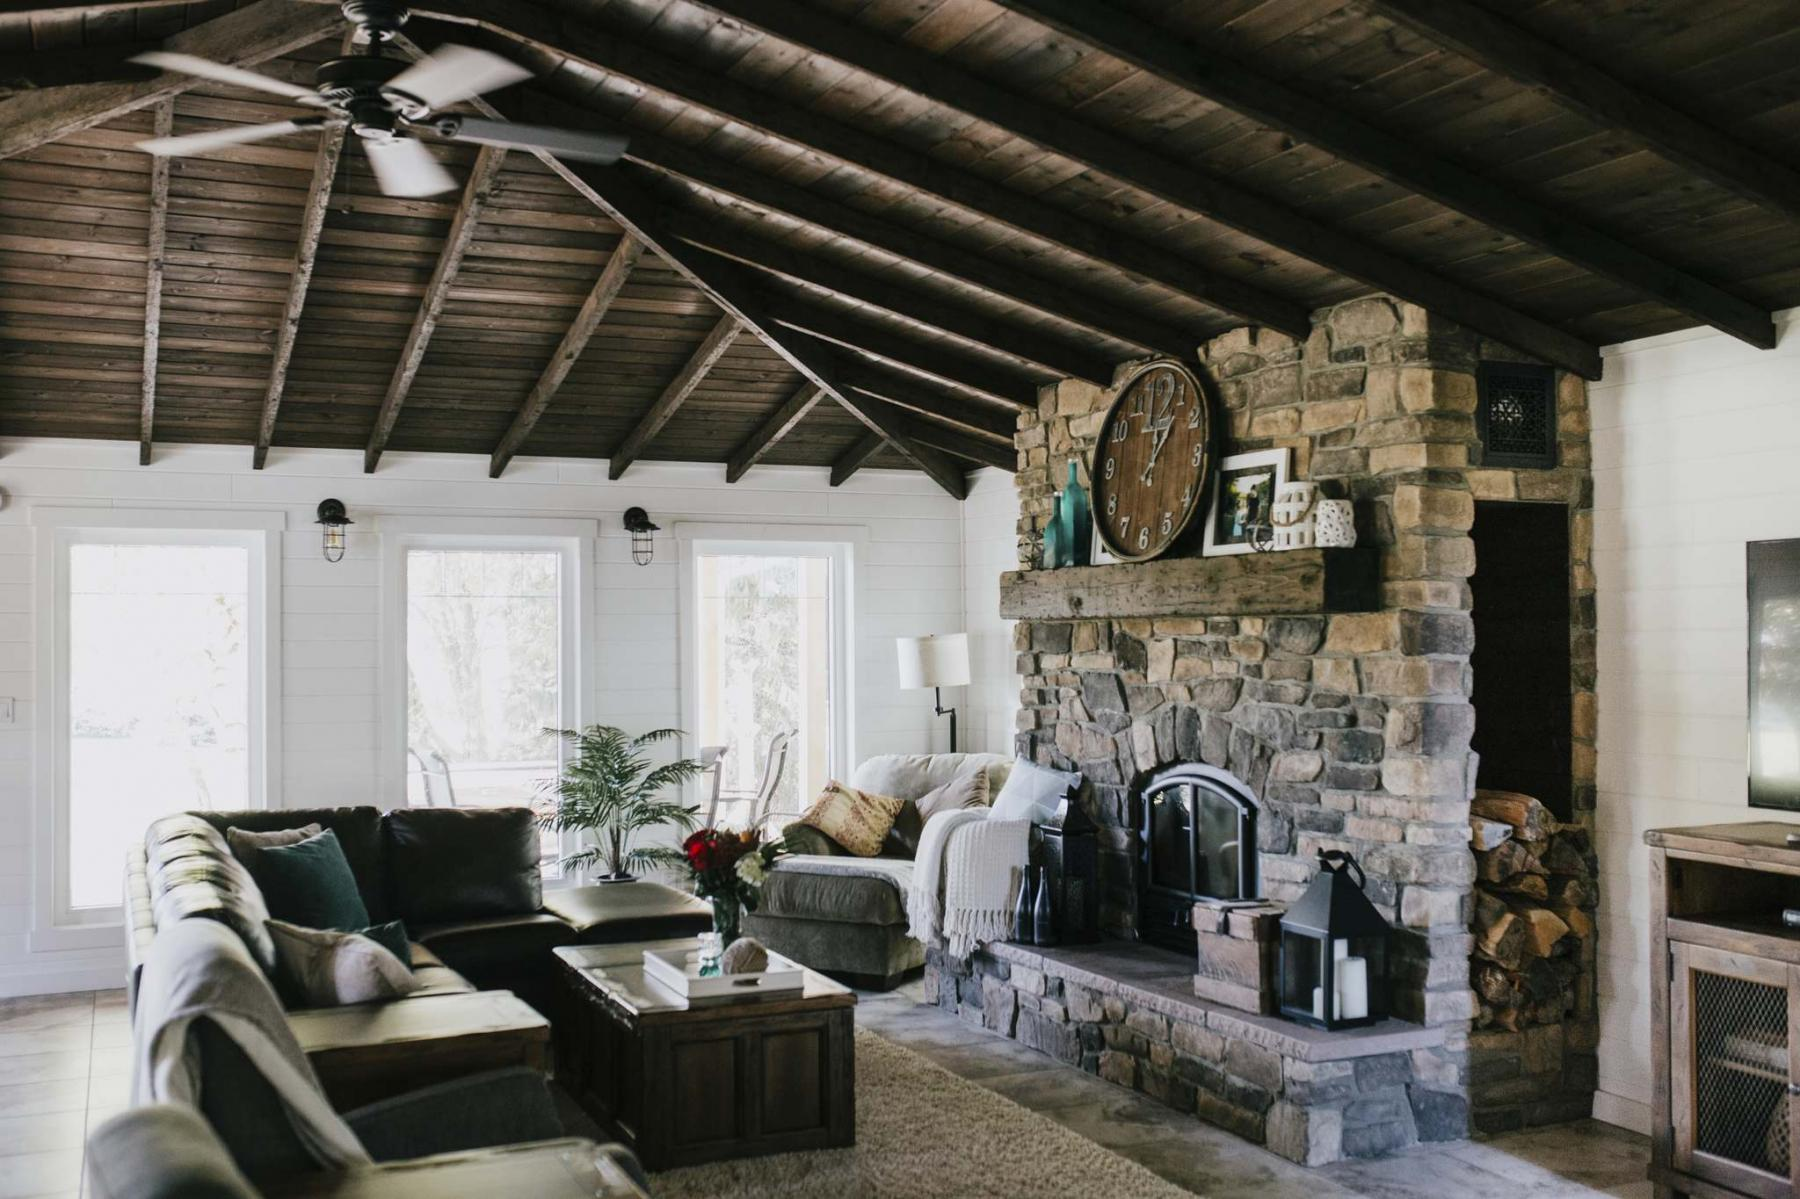 <p>The Home Workshop</p><p>The crew from the Home Workshop helped design and build this stunning sunroom in a rural Manitoba home. </p>